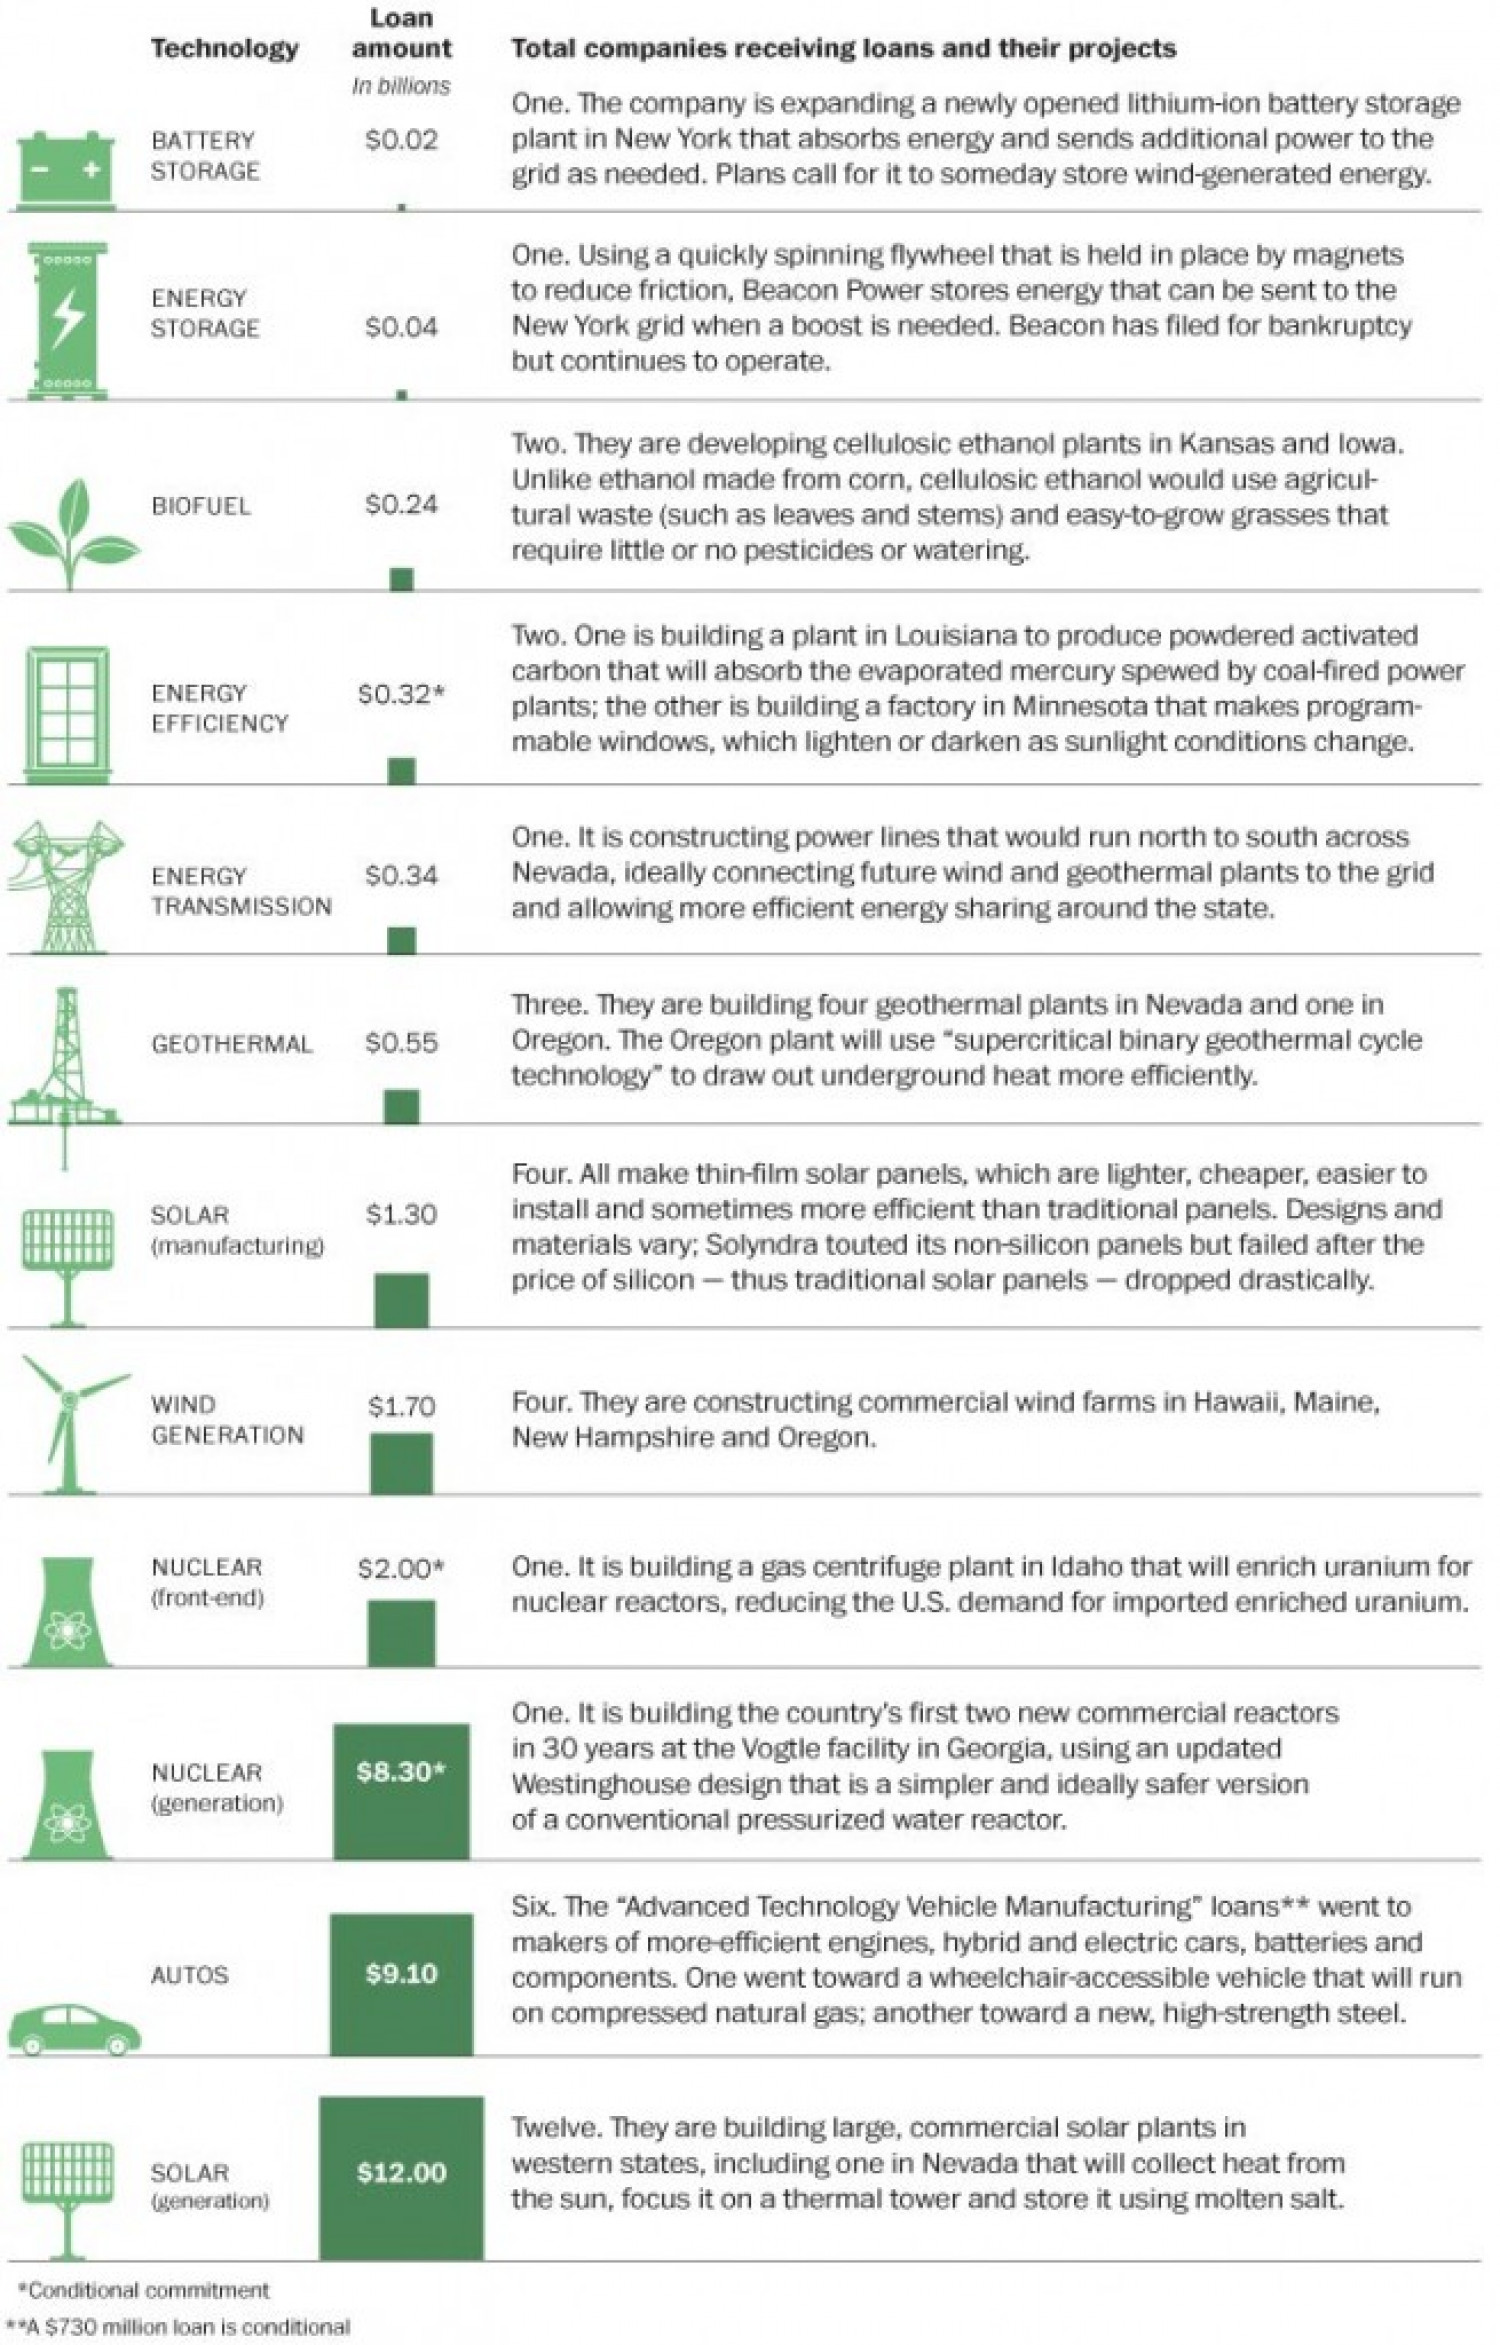 $36 billion in loans to renewable energy technologies Infographic